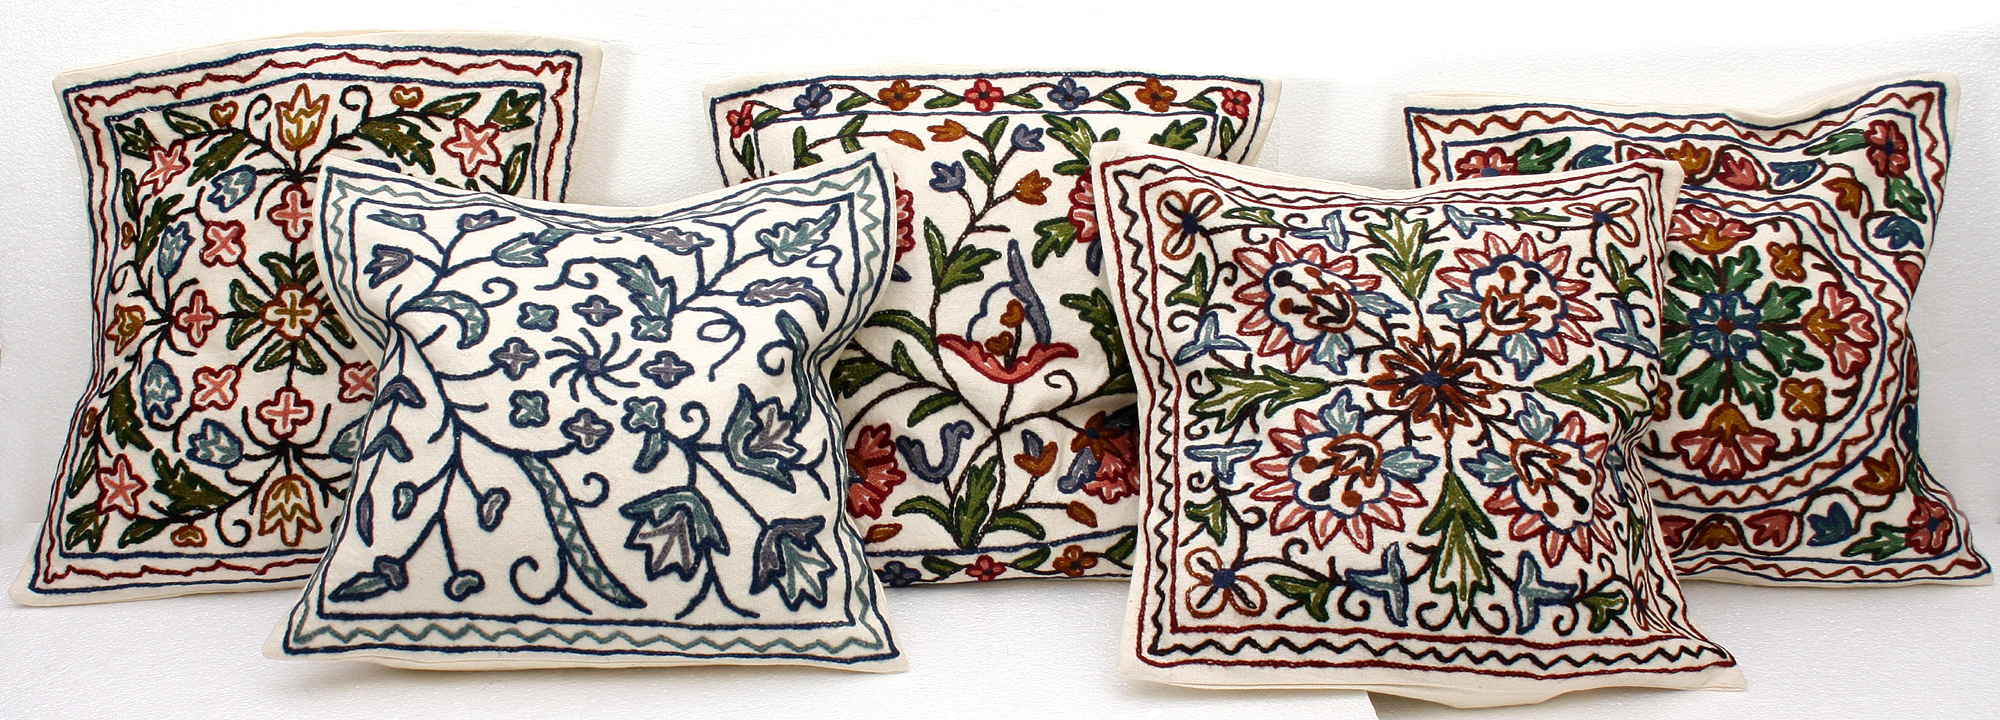 Lot Of Five Cushion Covers From Kashmir With All Over Ari